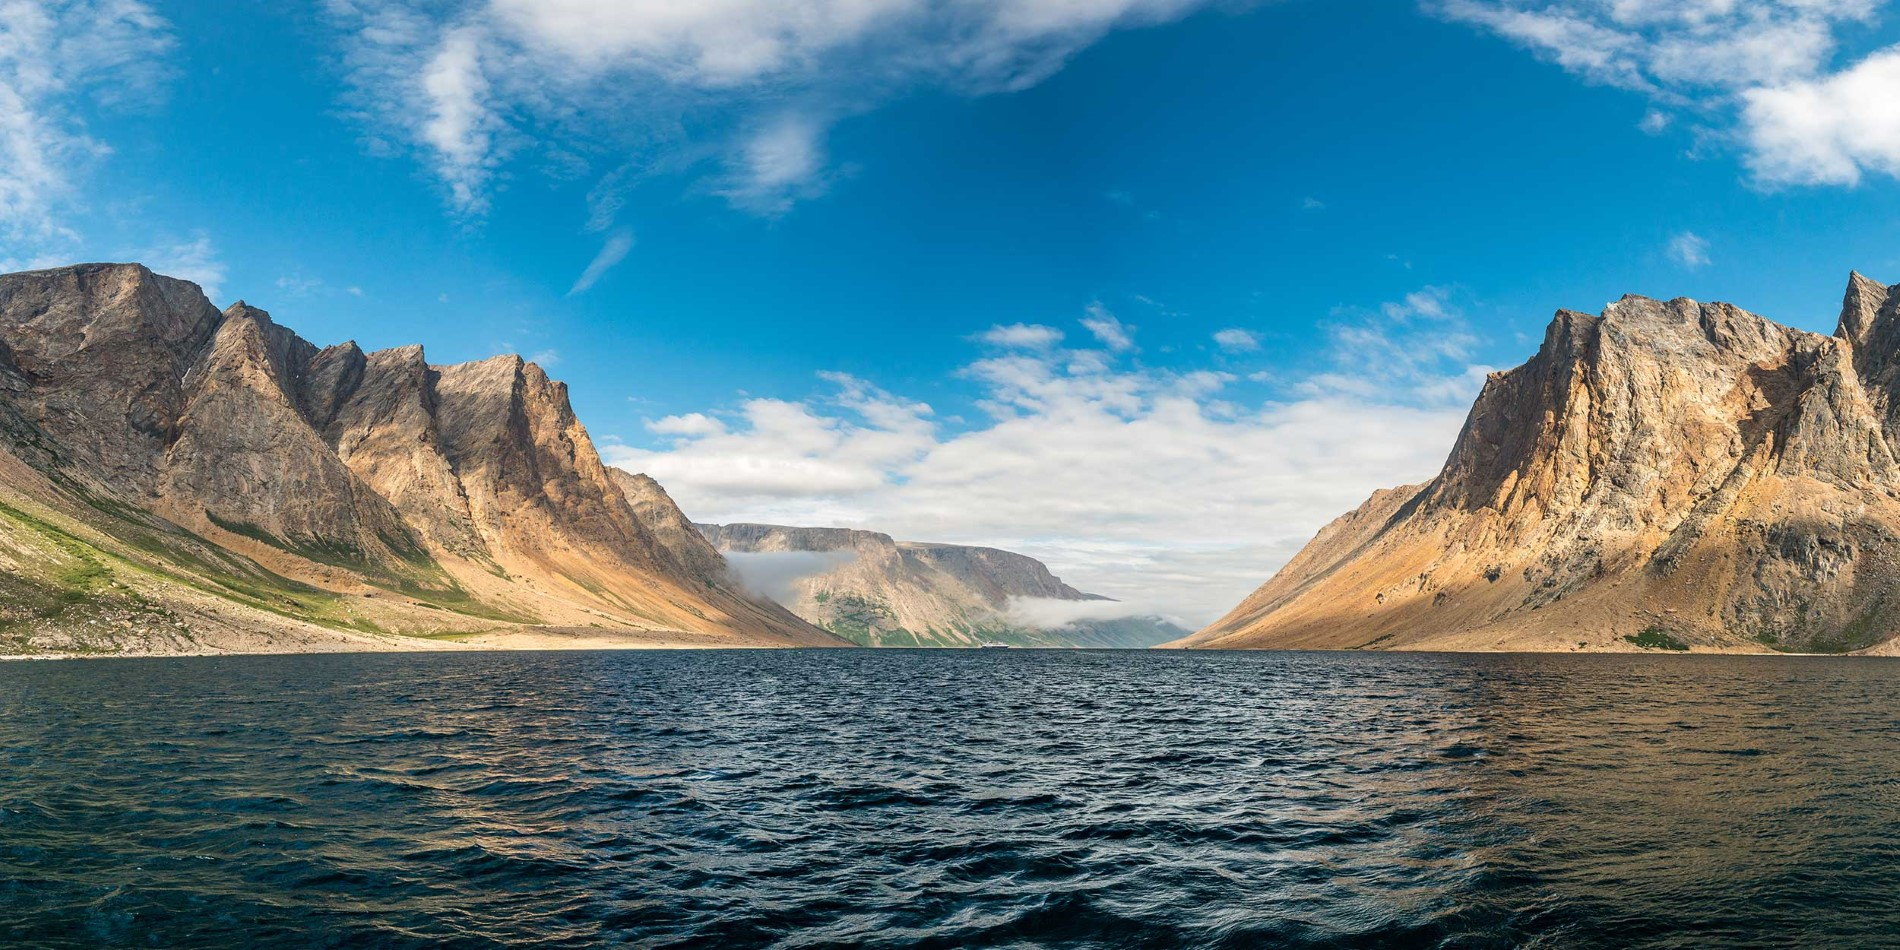 Saglek Fjord - Torngat Mountains on the Labrador coast in Canada